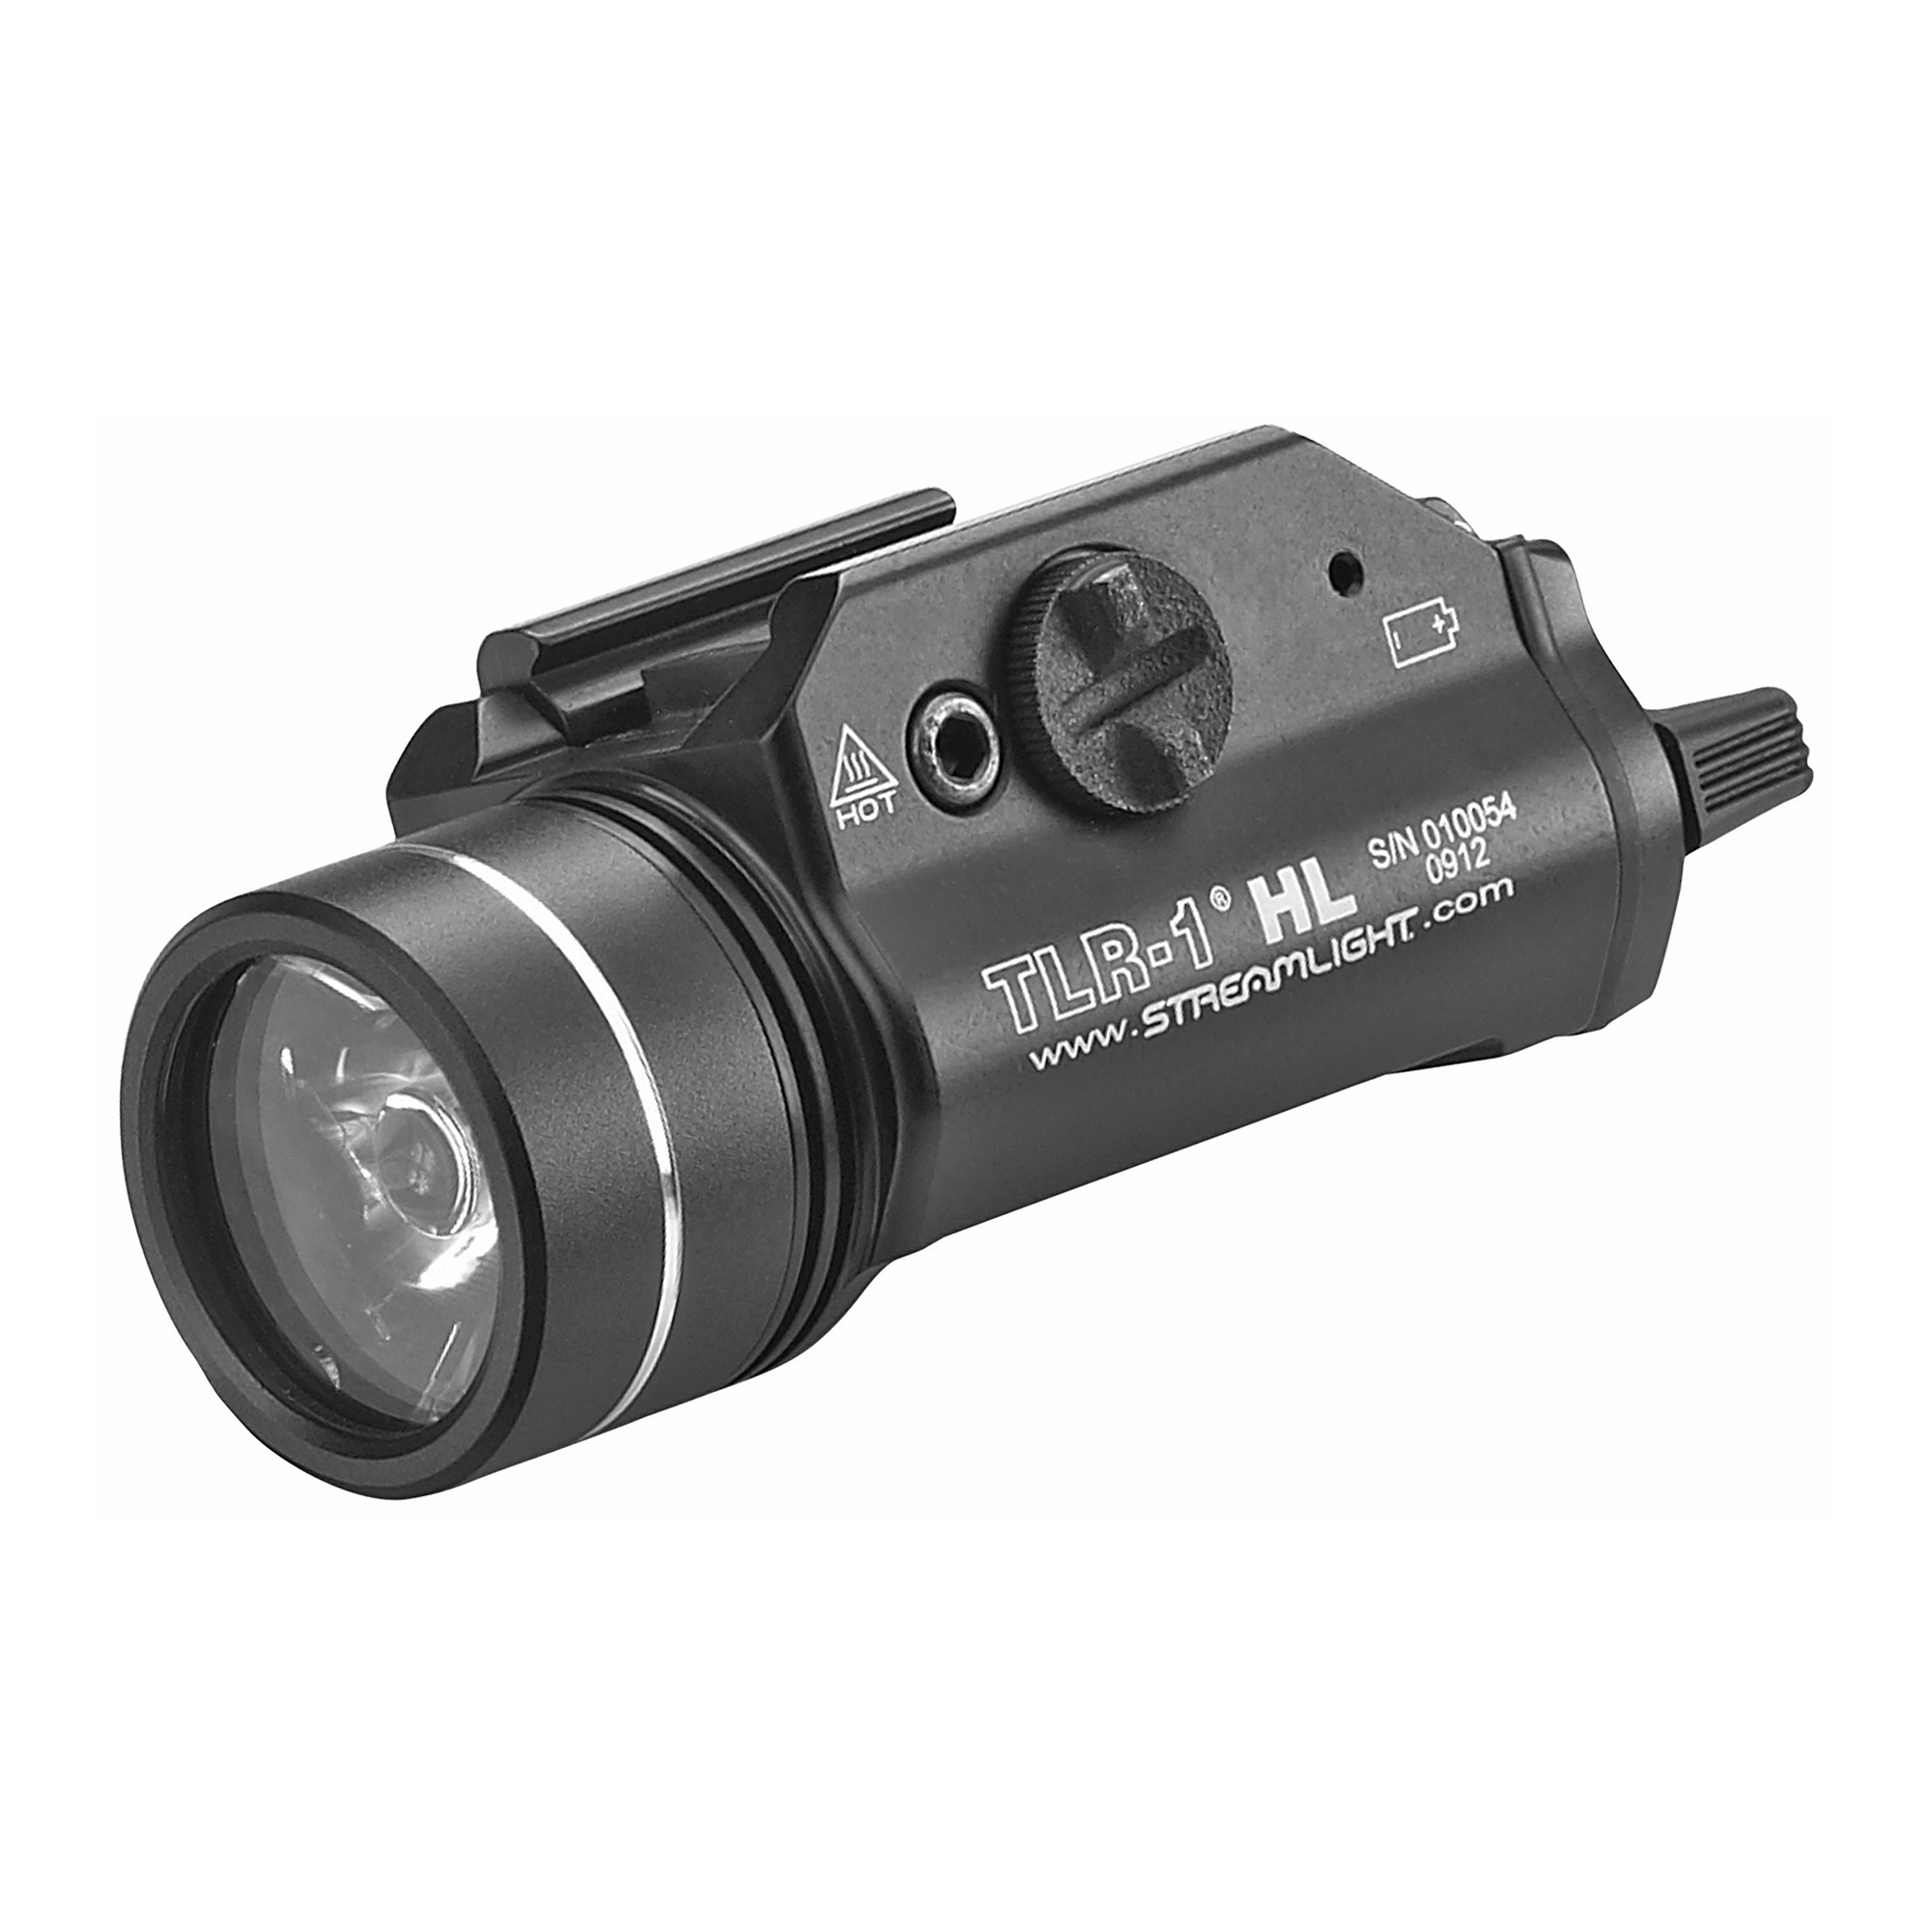 The TLR-1 HL now provides an 800 lumen blast of light for maximum illumination while clearing a room or searching an alley. Its wide beam pattern lights up large areas so you can identify who or what is nearby.